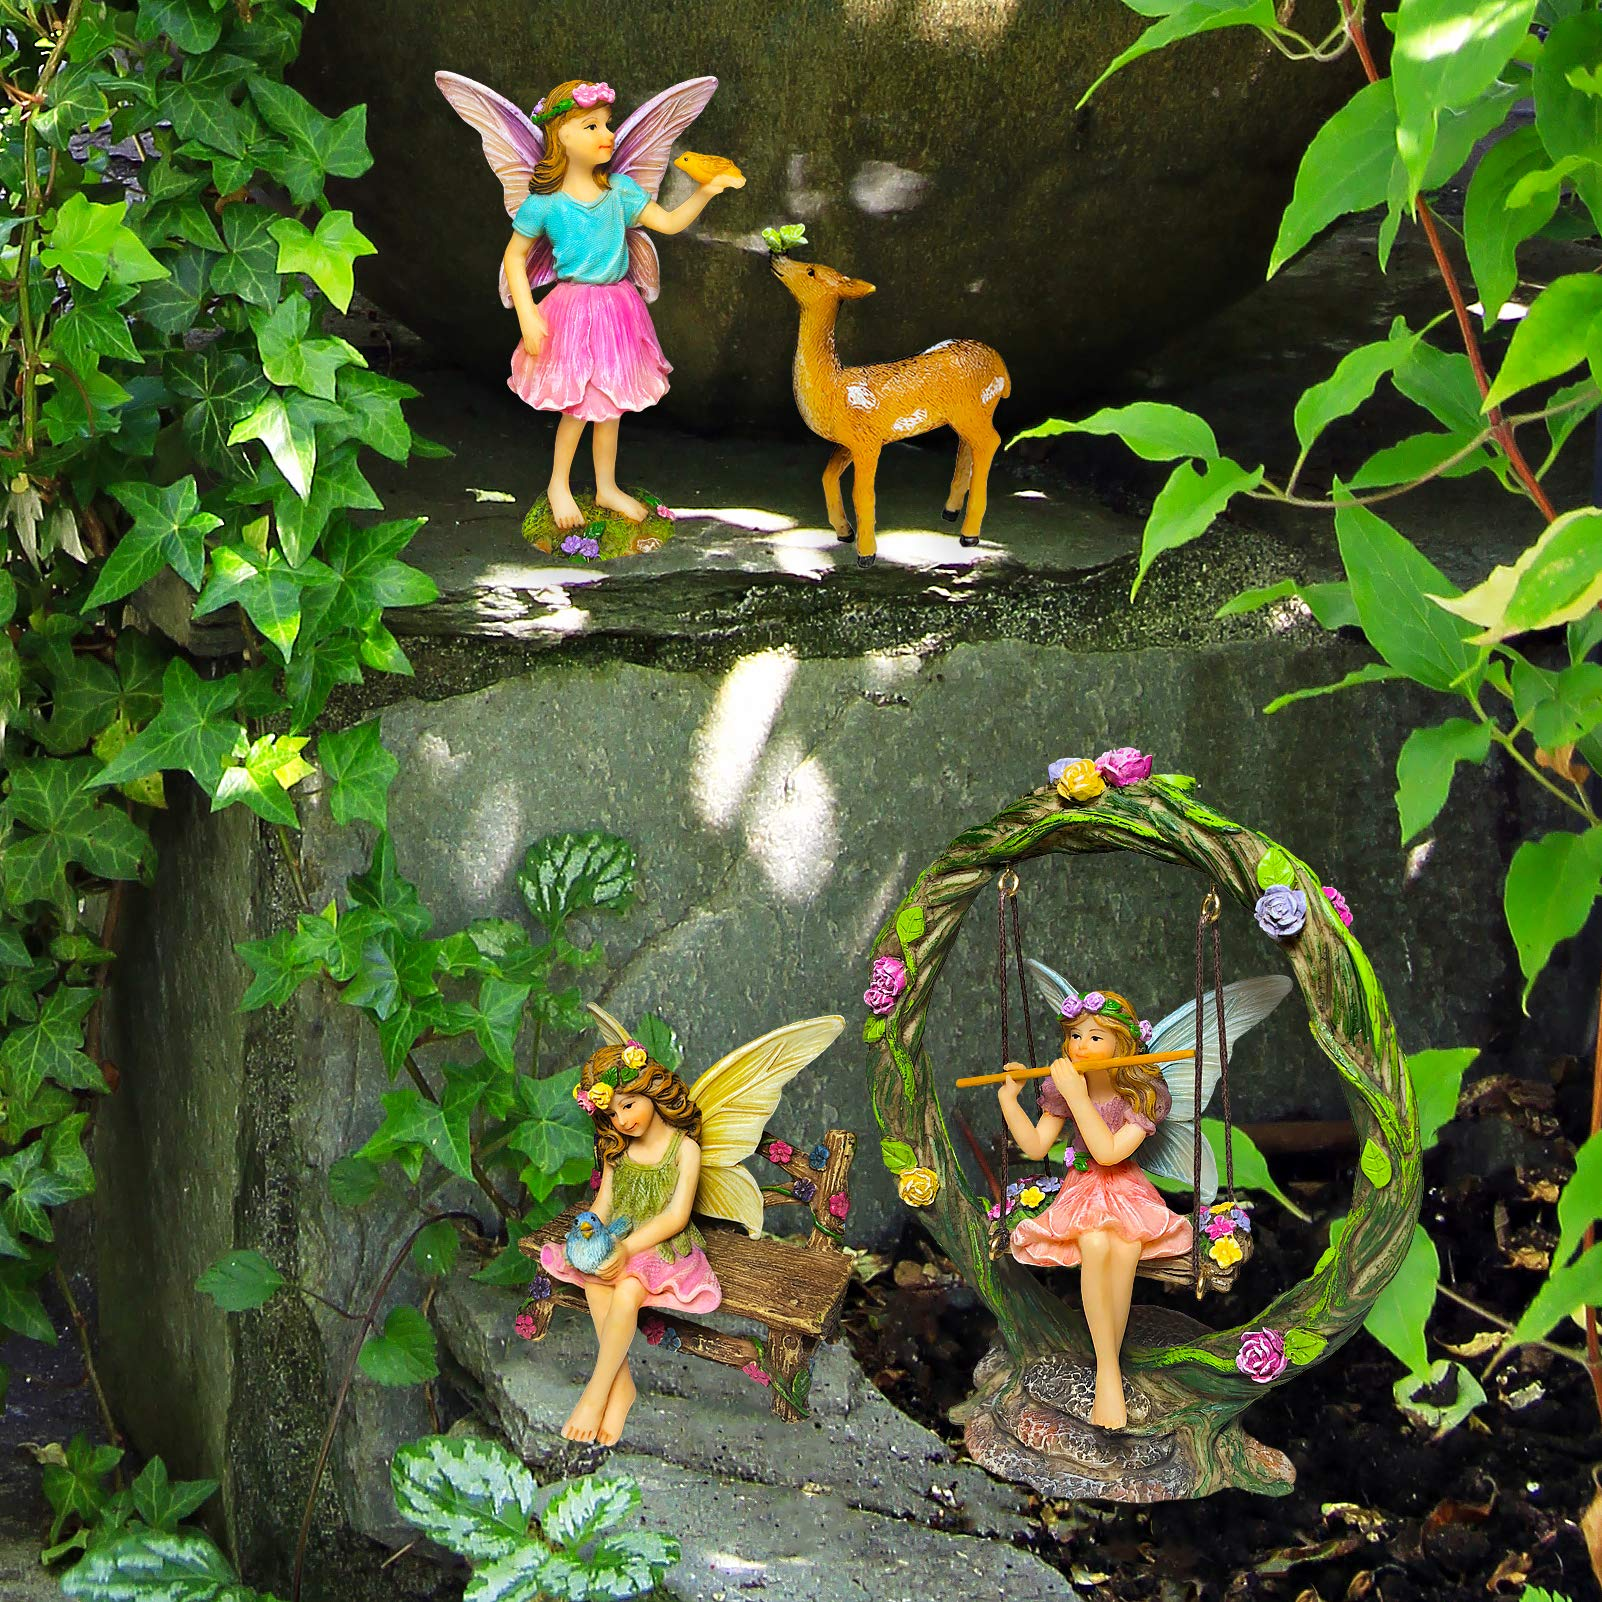 Mood Lab Fairy Garden Kit - Miniature Figurines with Accessories Swing Set of 6 pcs - Hand Painted for Outdoor or House Decor by Mood Lab (Image #9)